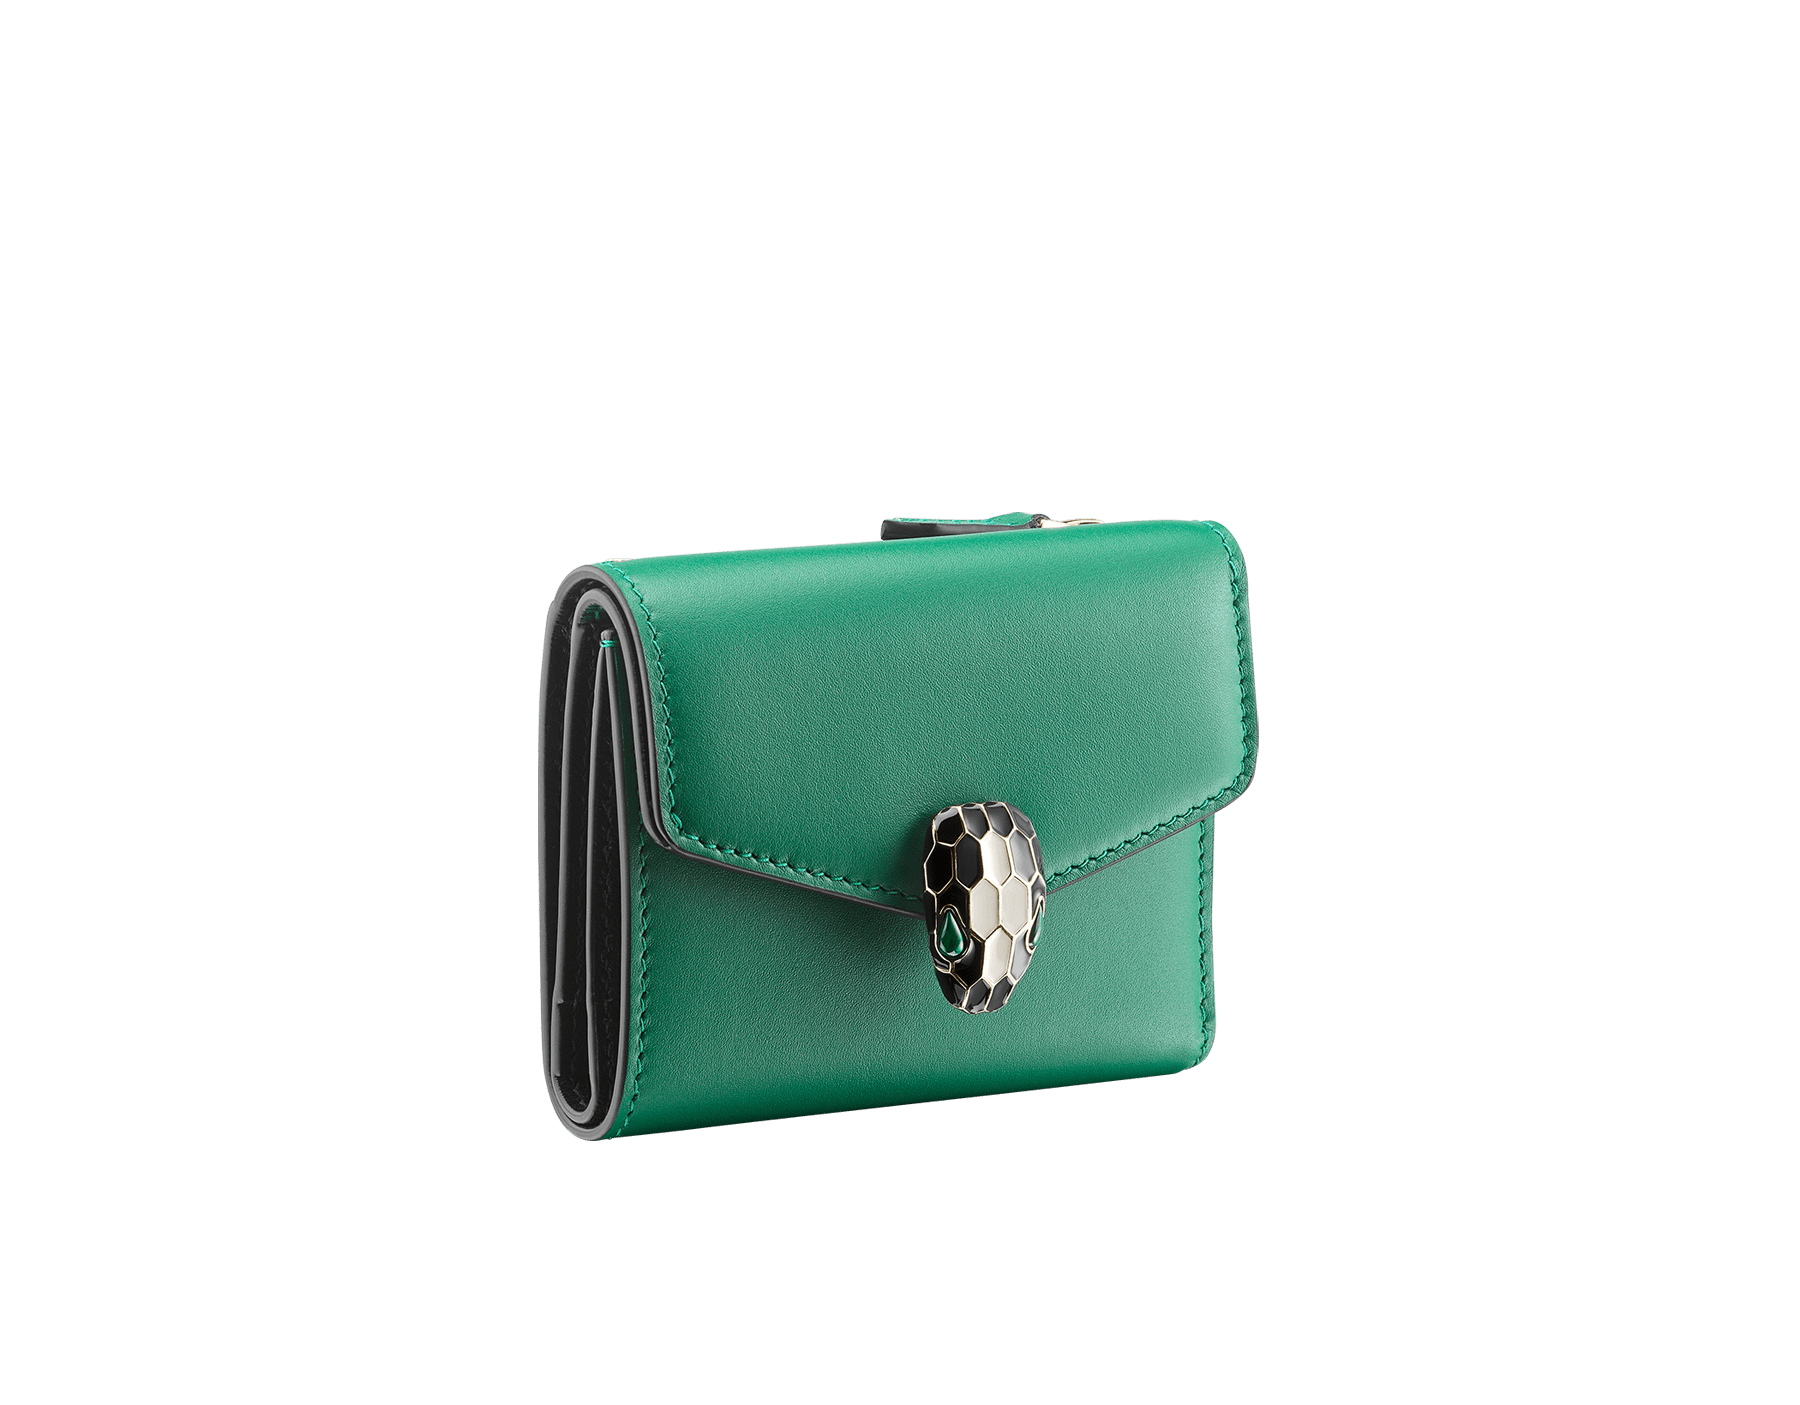 Serpenti Forever compact wallet in daisy topaz calf leather and white agate goatskin. Iconic light gold plated brass snake head stud closure in white agate and daisy topaz enamel, with black onyx eyes. SEA-SLIMCOMPACT-CLa image 1